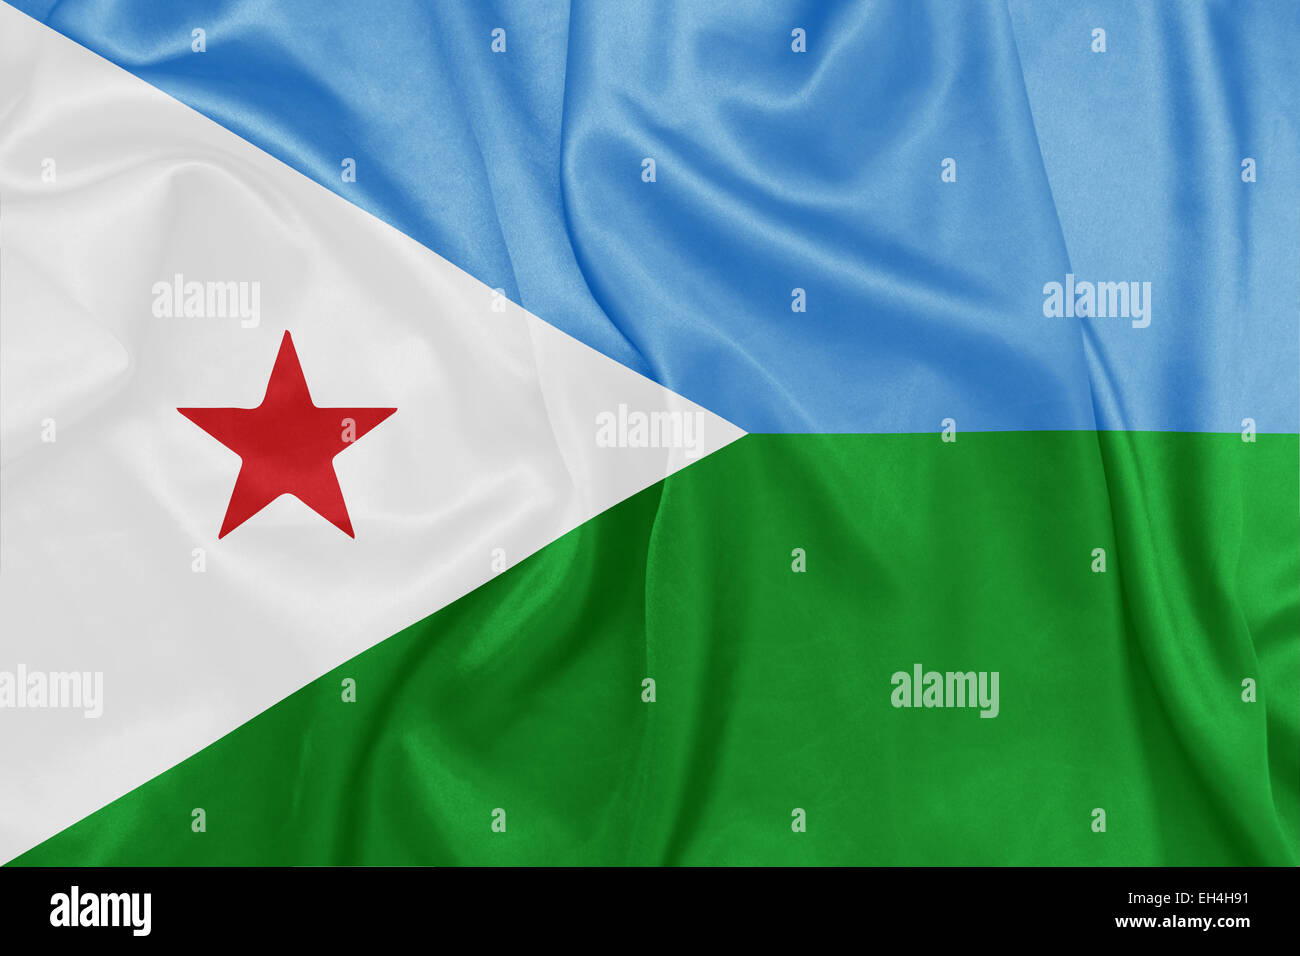 Djibouti - Waving national flag on silk texture - Stock Image